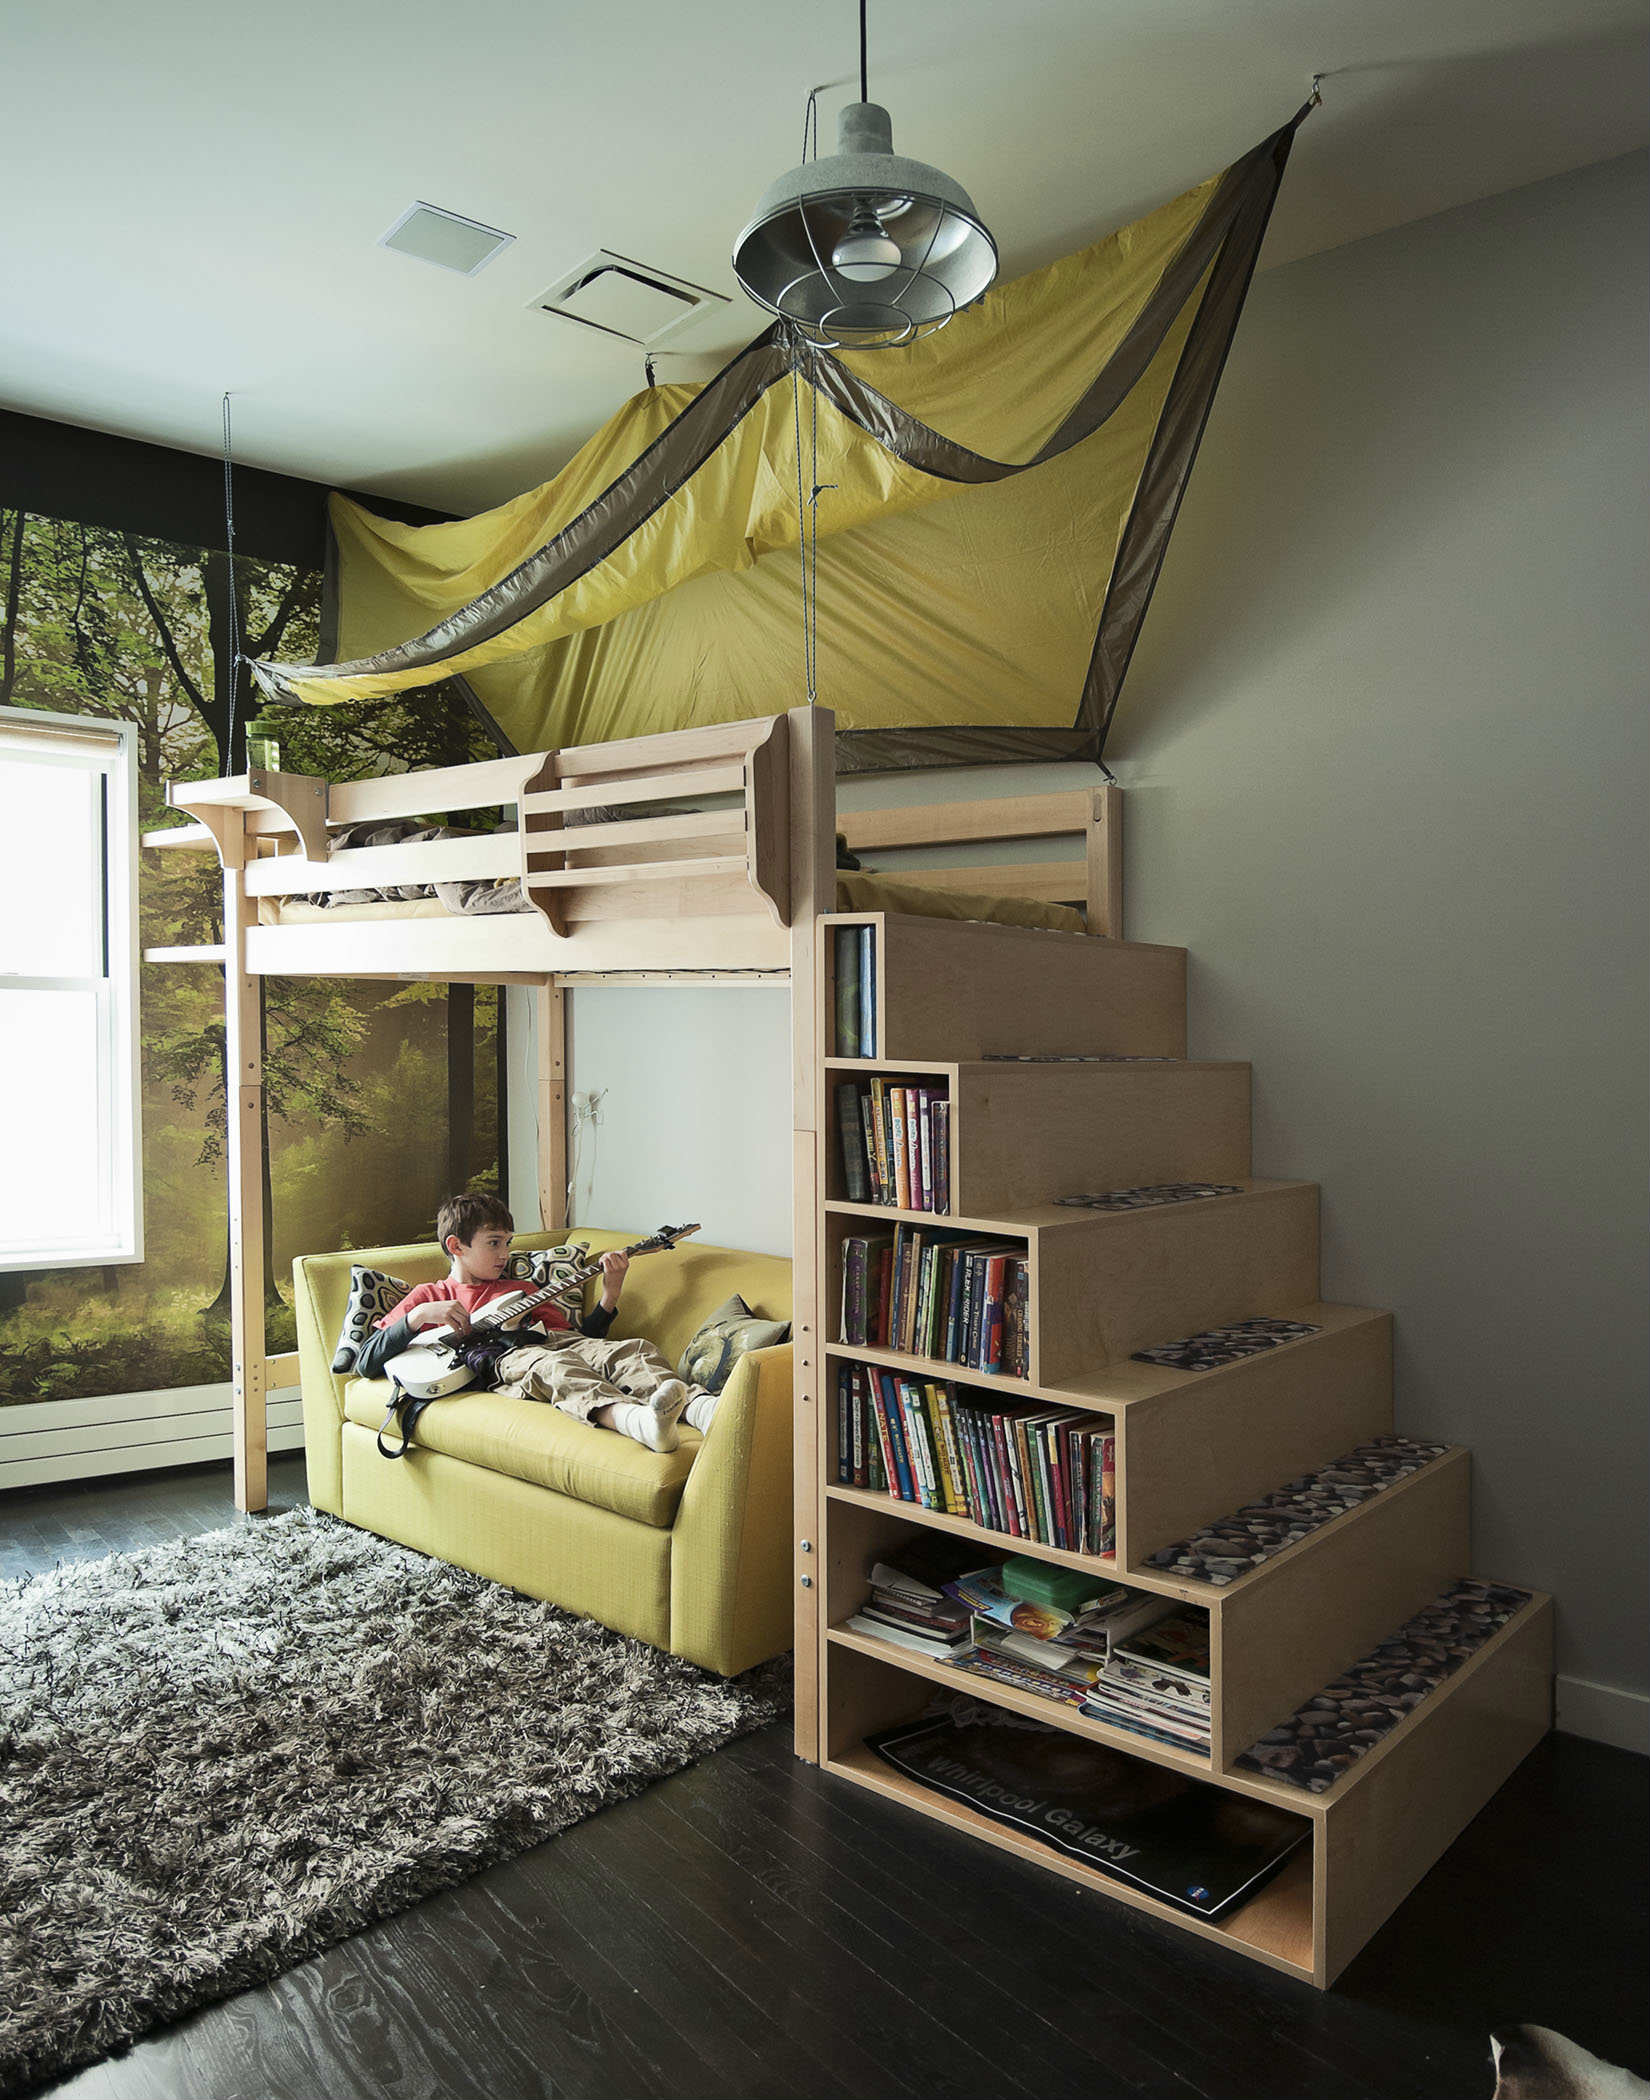 Wondrous cool wood bunk bed | 10 Best Built-in Bunk Beds - Tinyme Blog